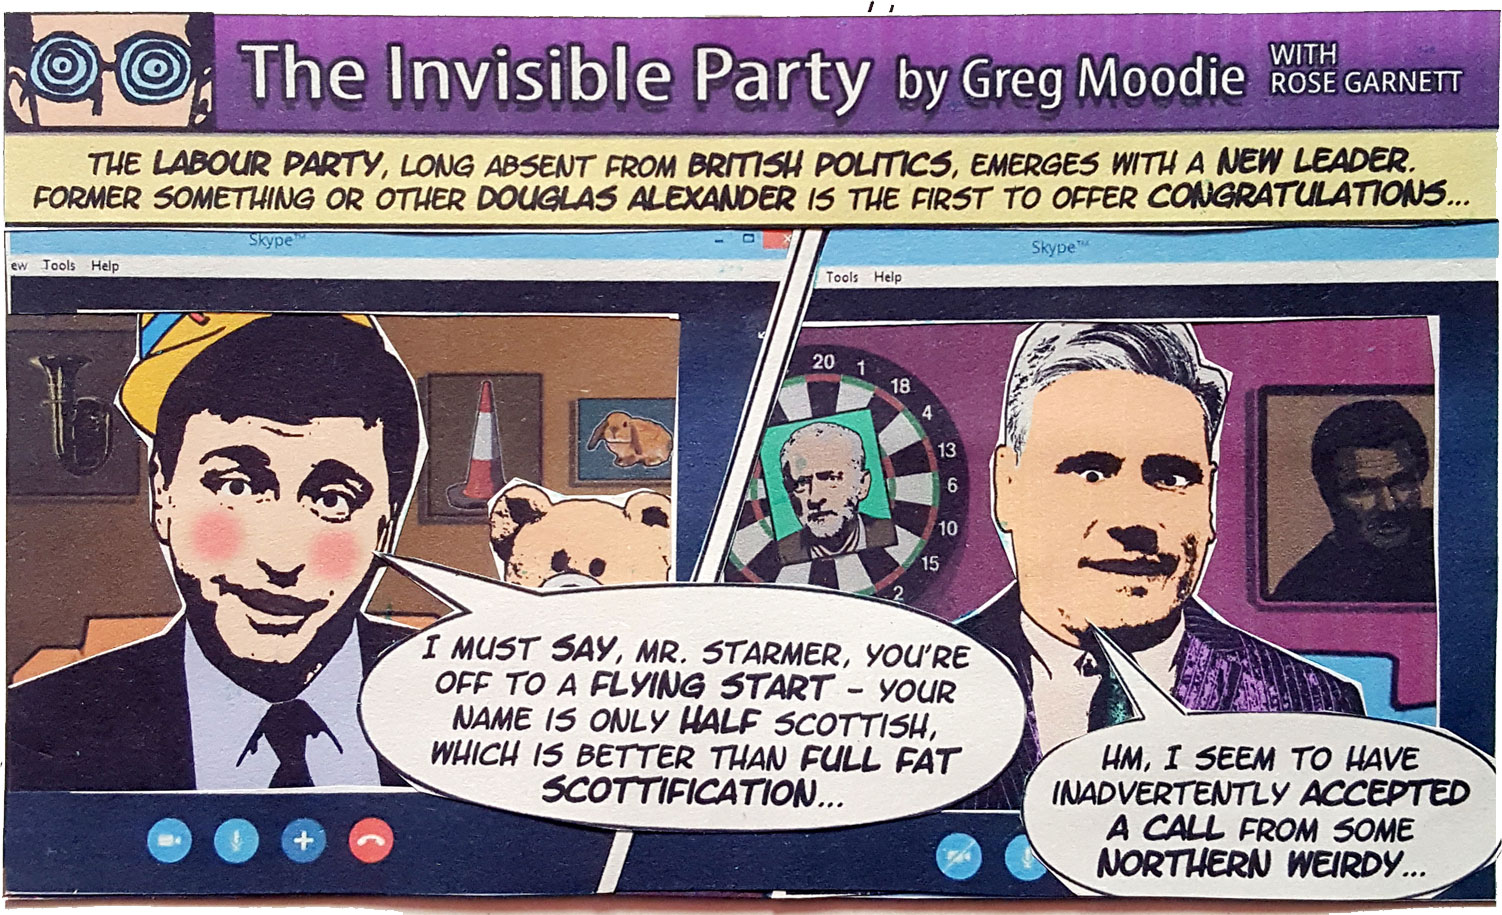 The Invisible Party